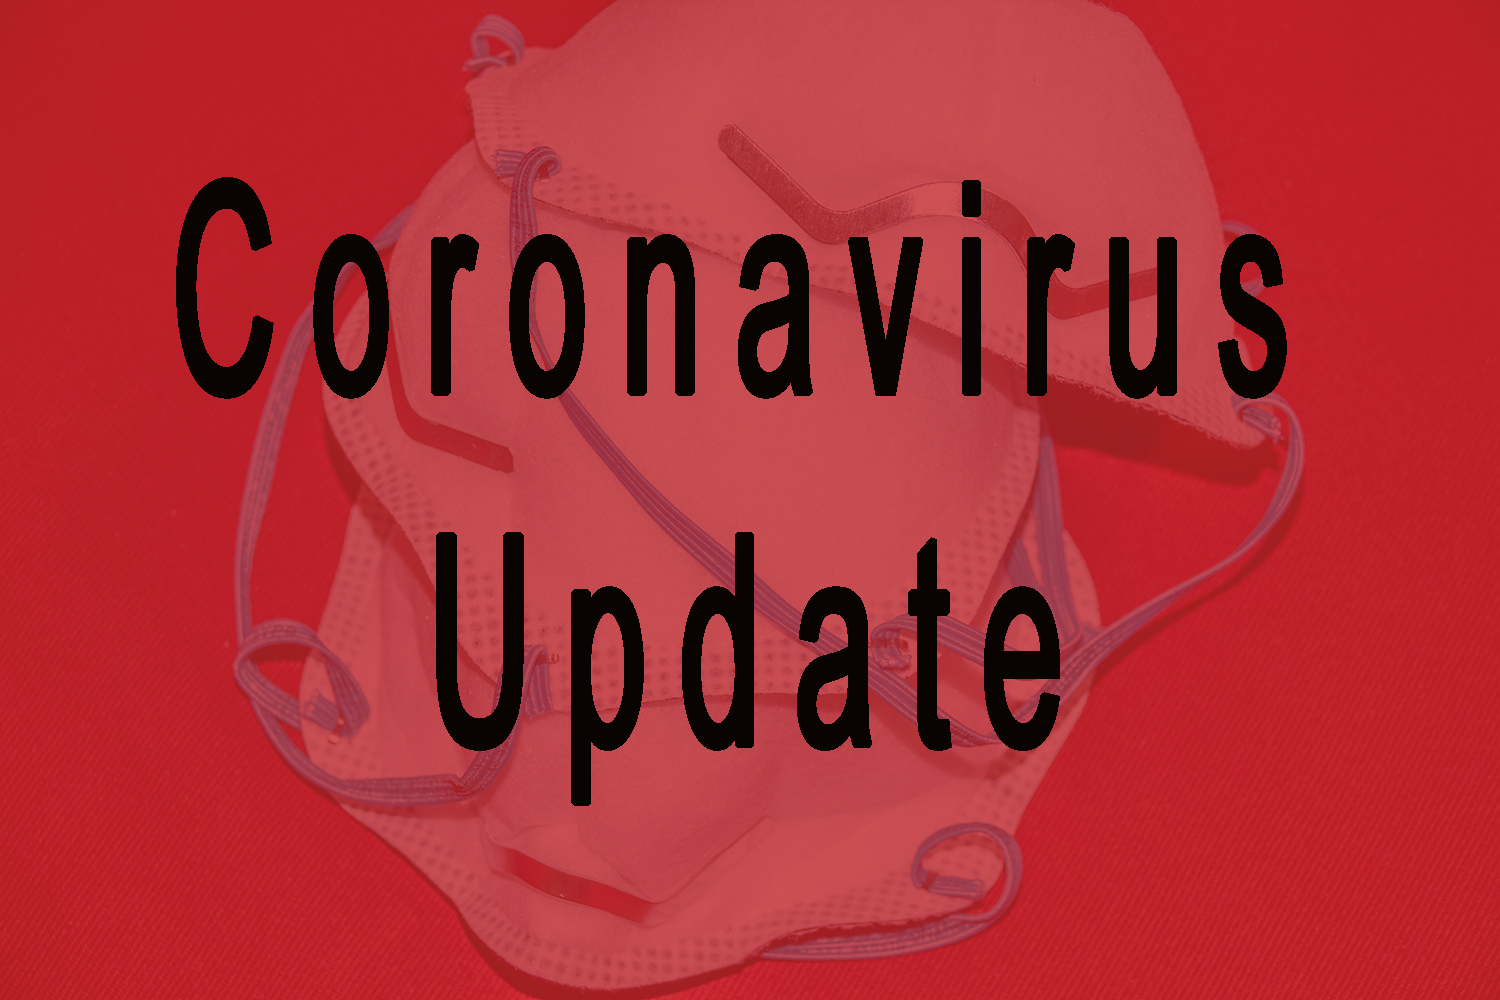 Cases of coronavirus are on the rise